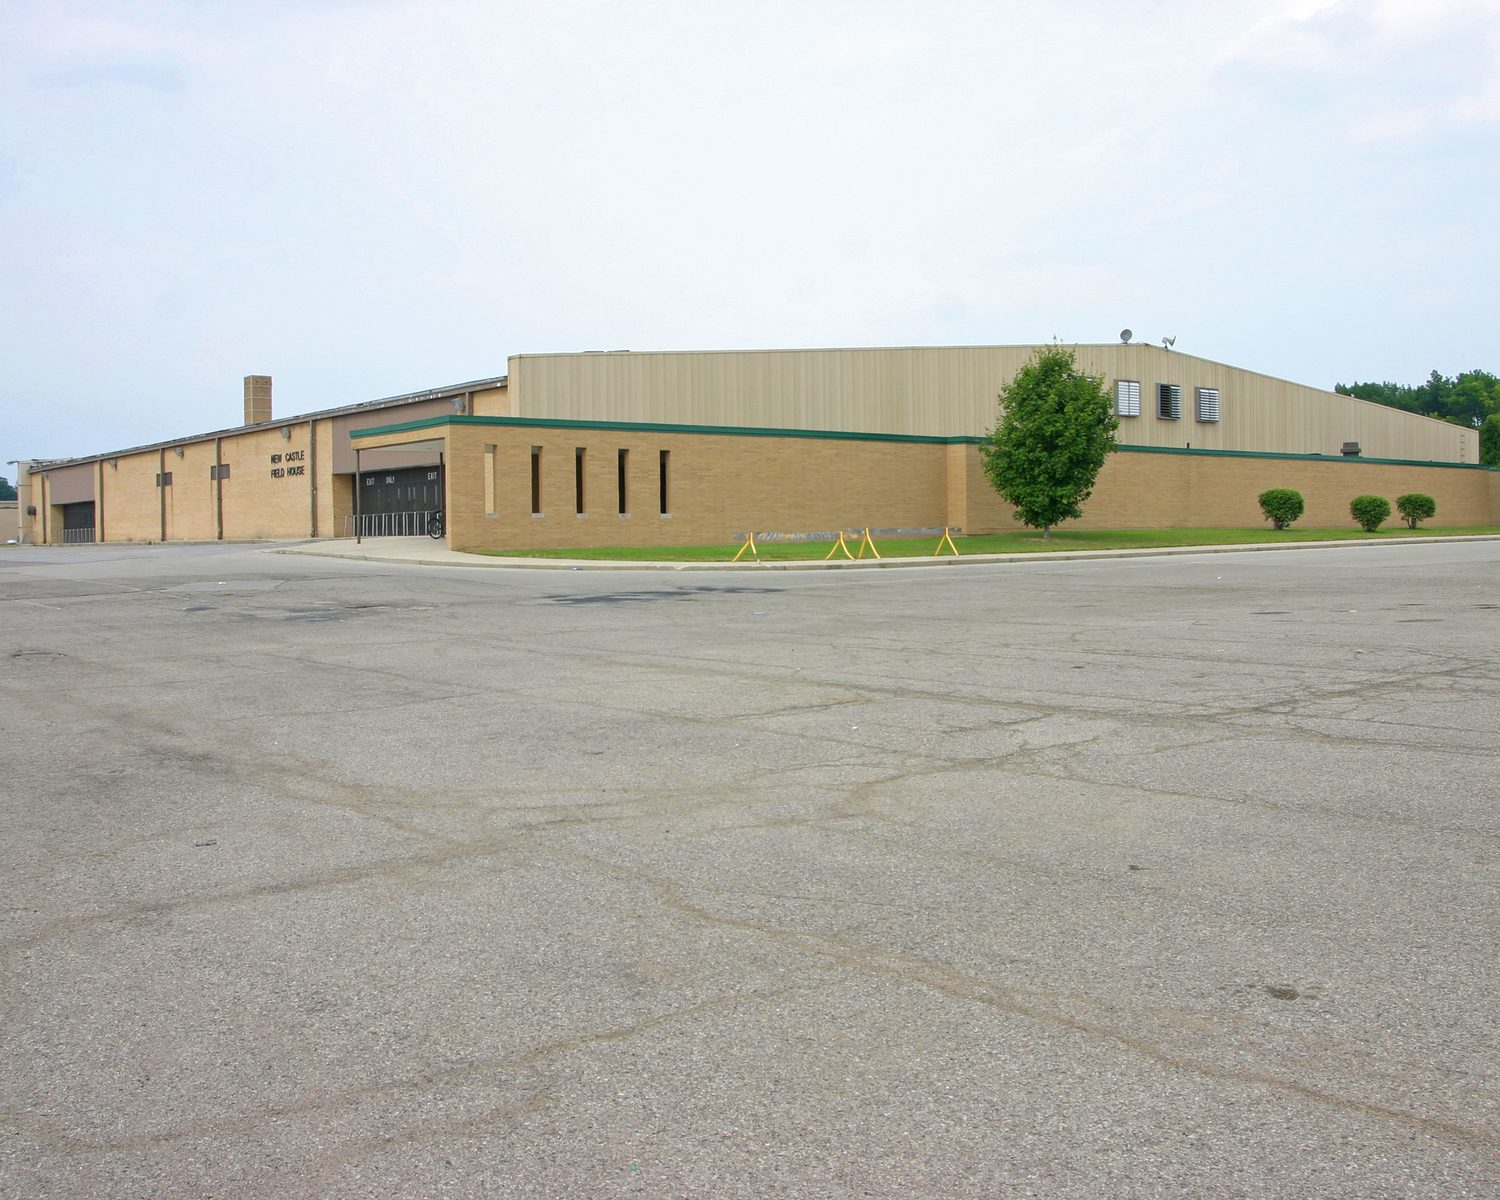 Exterior of the New Castle High School Fieldhouse. Built in 1959, this gymnasium is the worlds largest high school basketball gym holding 9,325 spectators, half the town's population.  Indiana is home to nine of the USA's 10 largest high school basketball arenas, but the Fieldhouse is the biggest of them all.